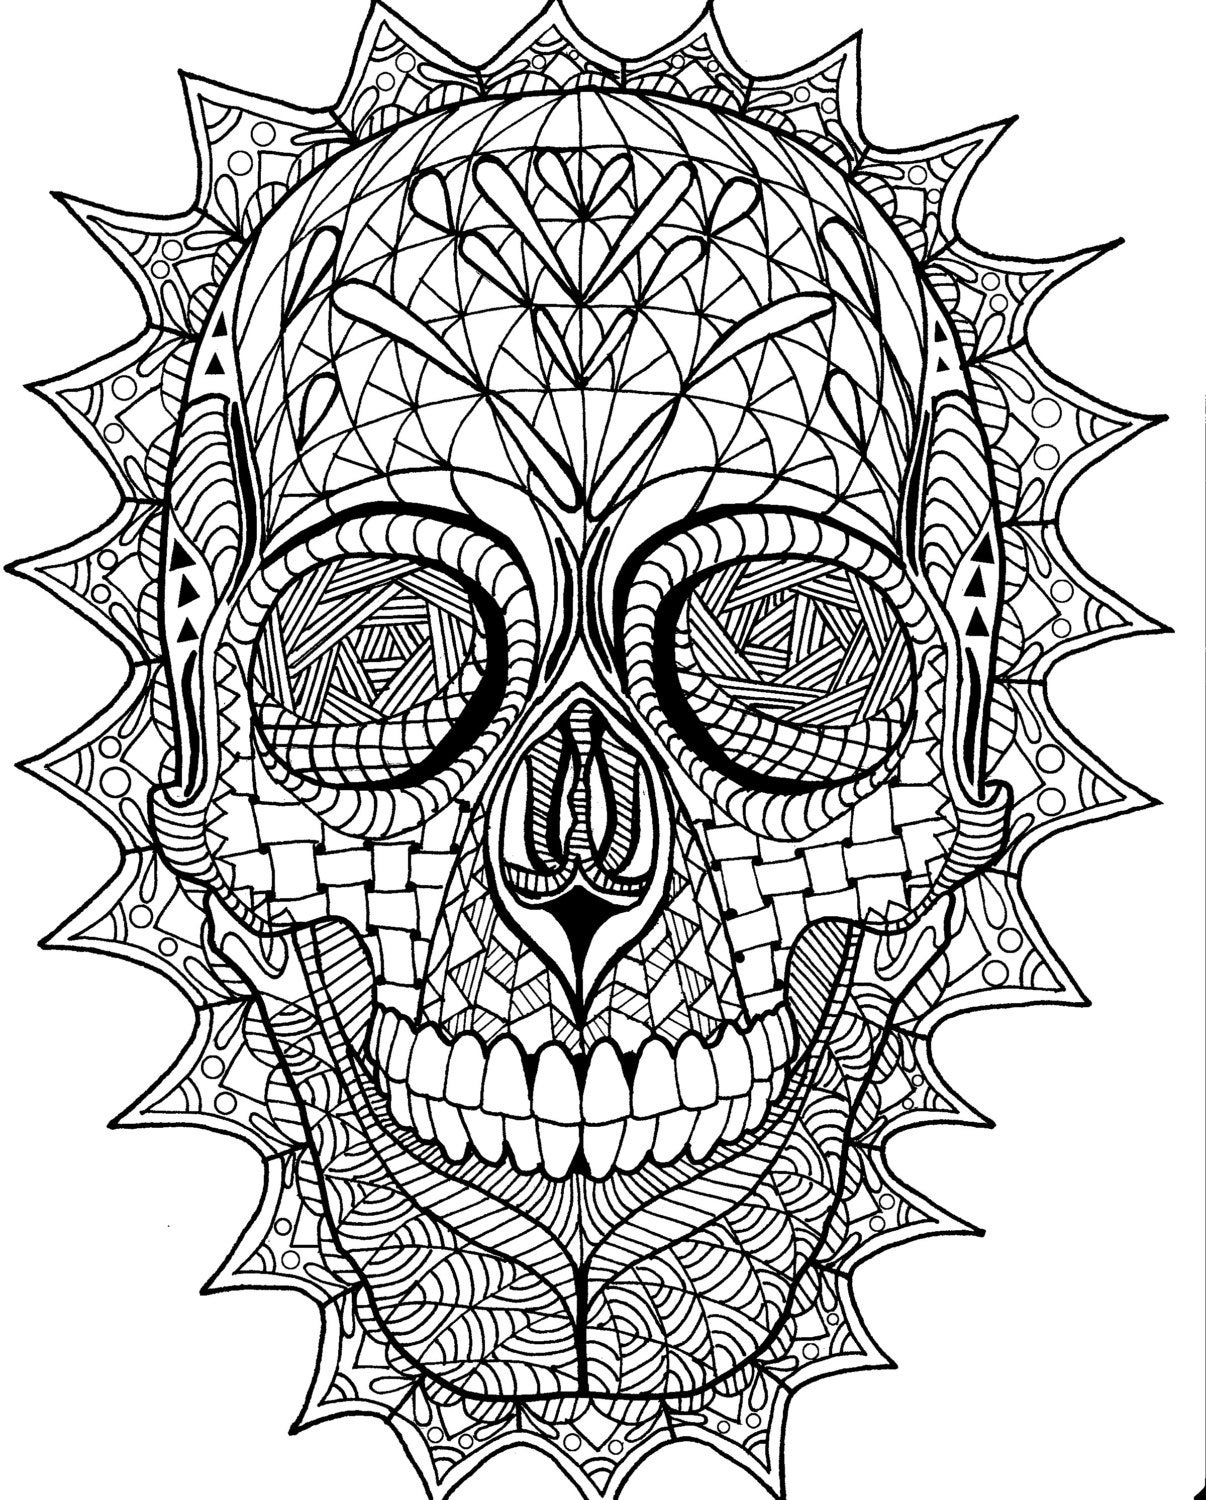 skull color coloring pages skull free printable coloring pages skull color